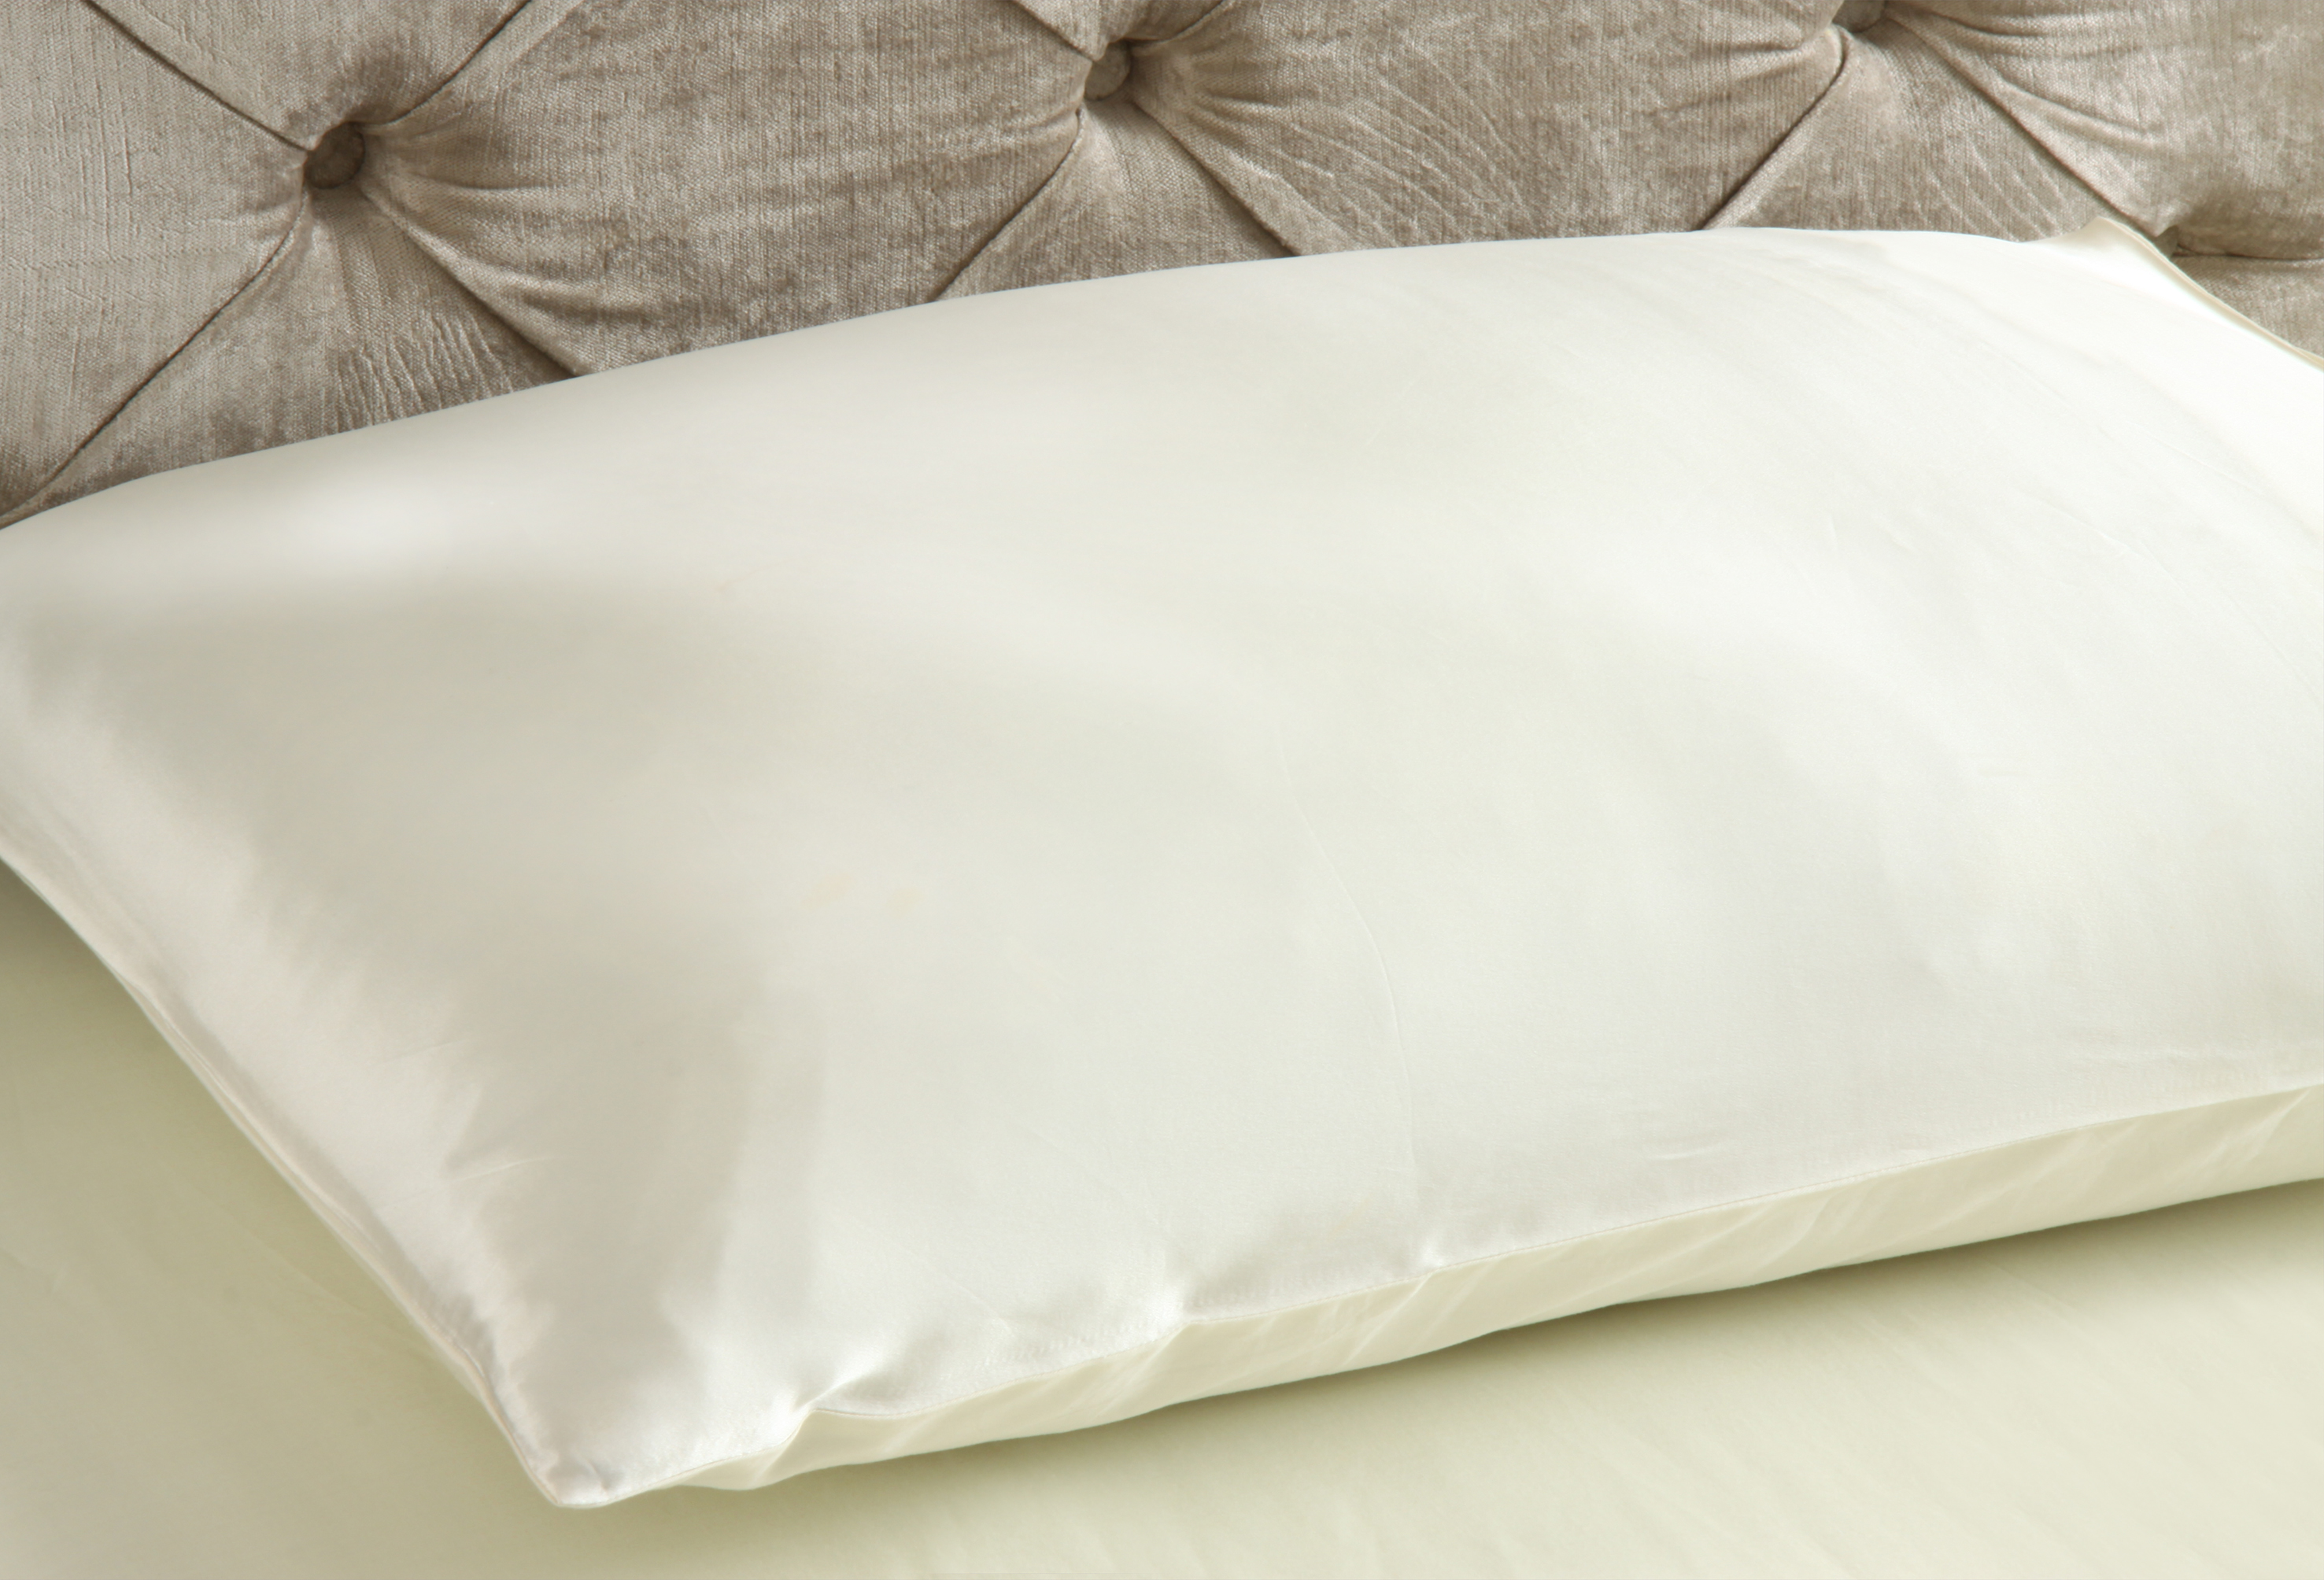 silk-pillow-on-bed